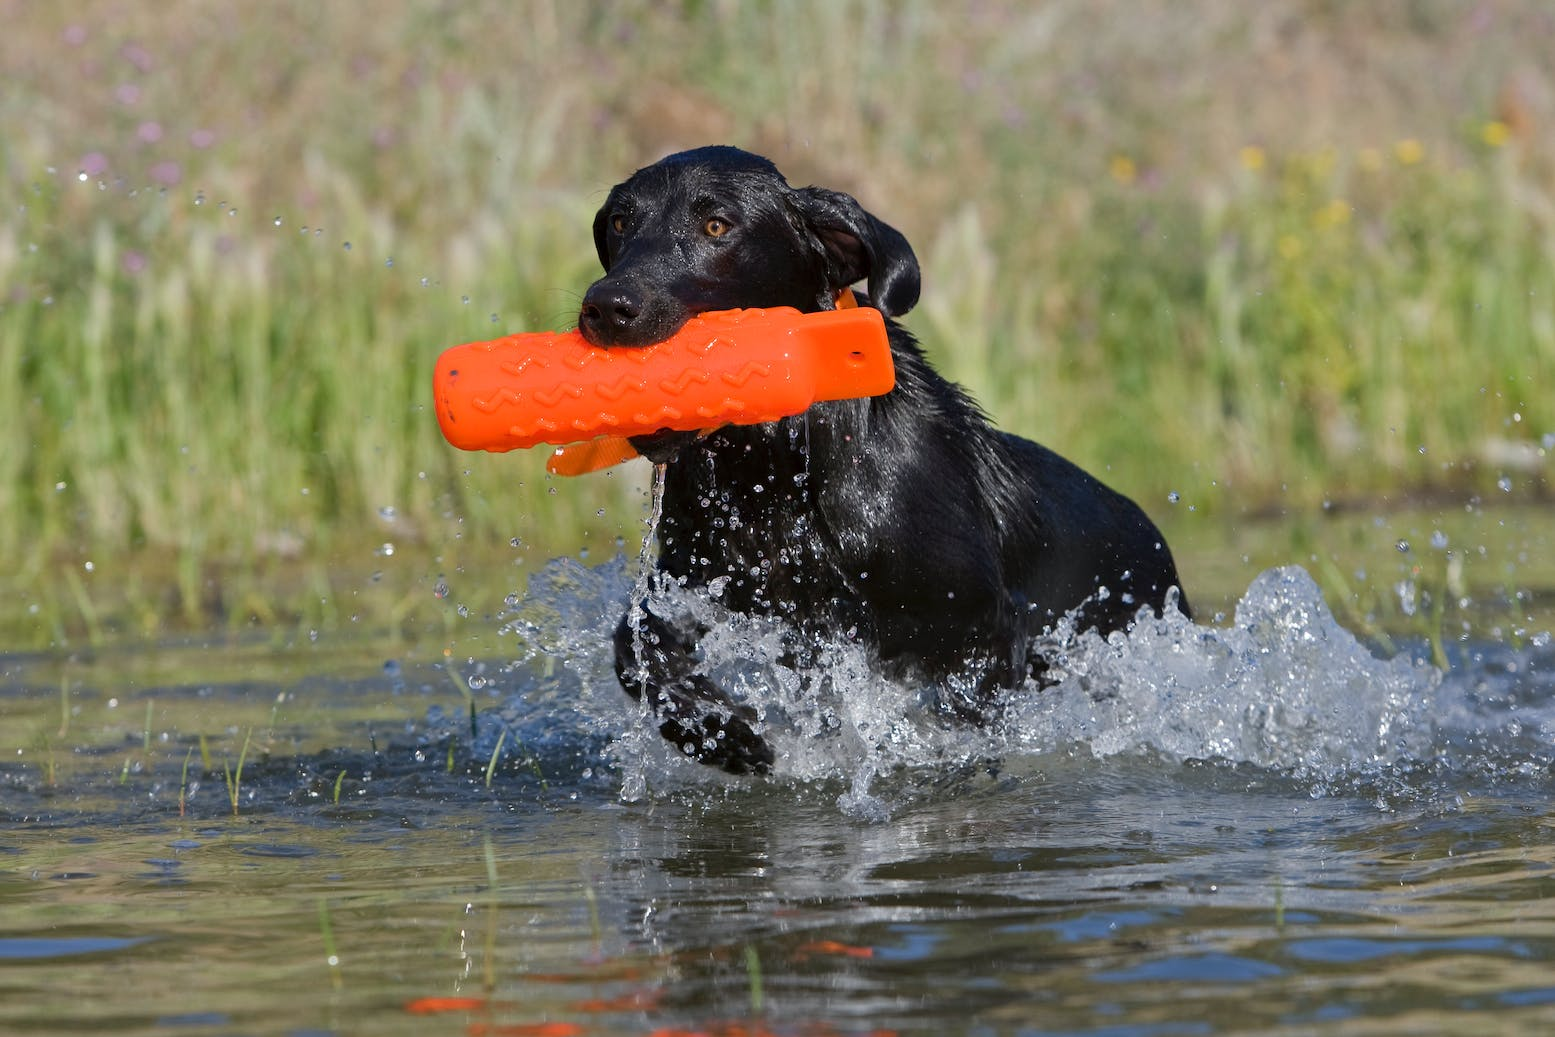 Bird Dog Training - Filson Life - 3